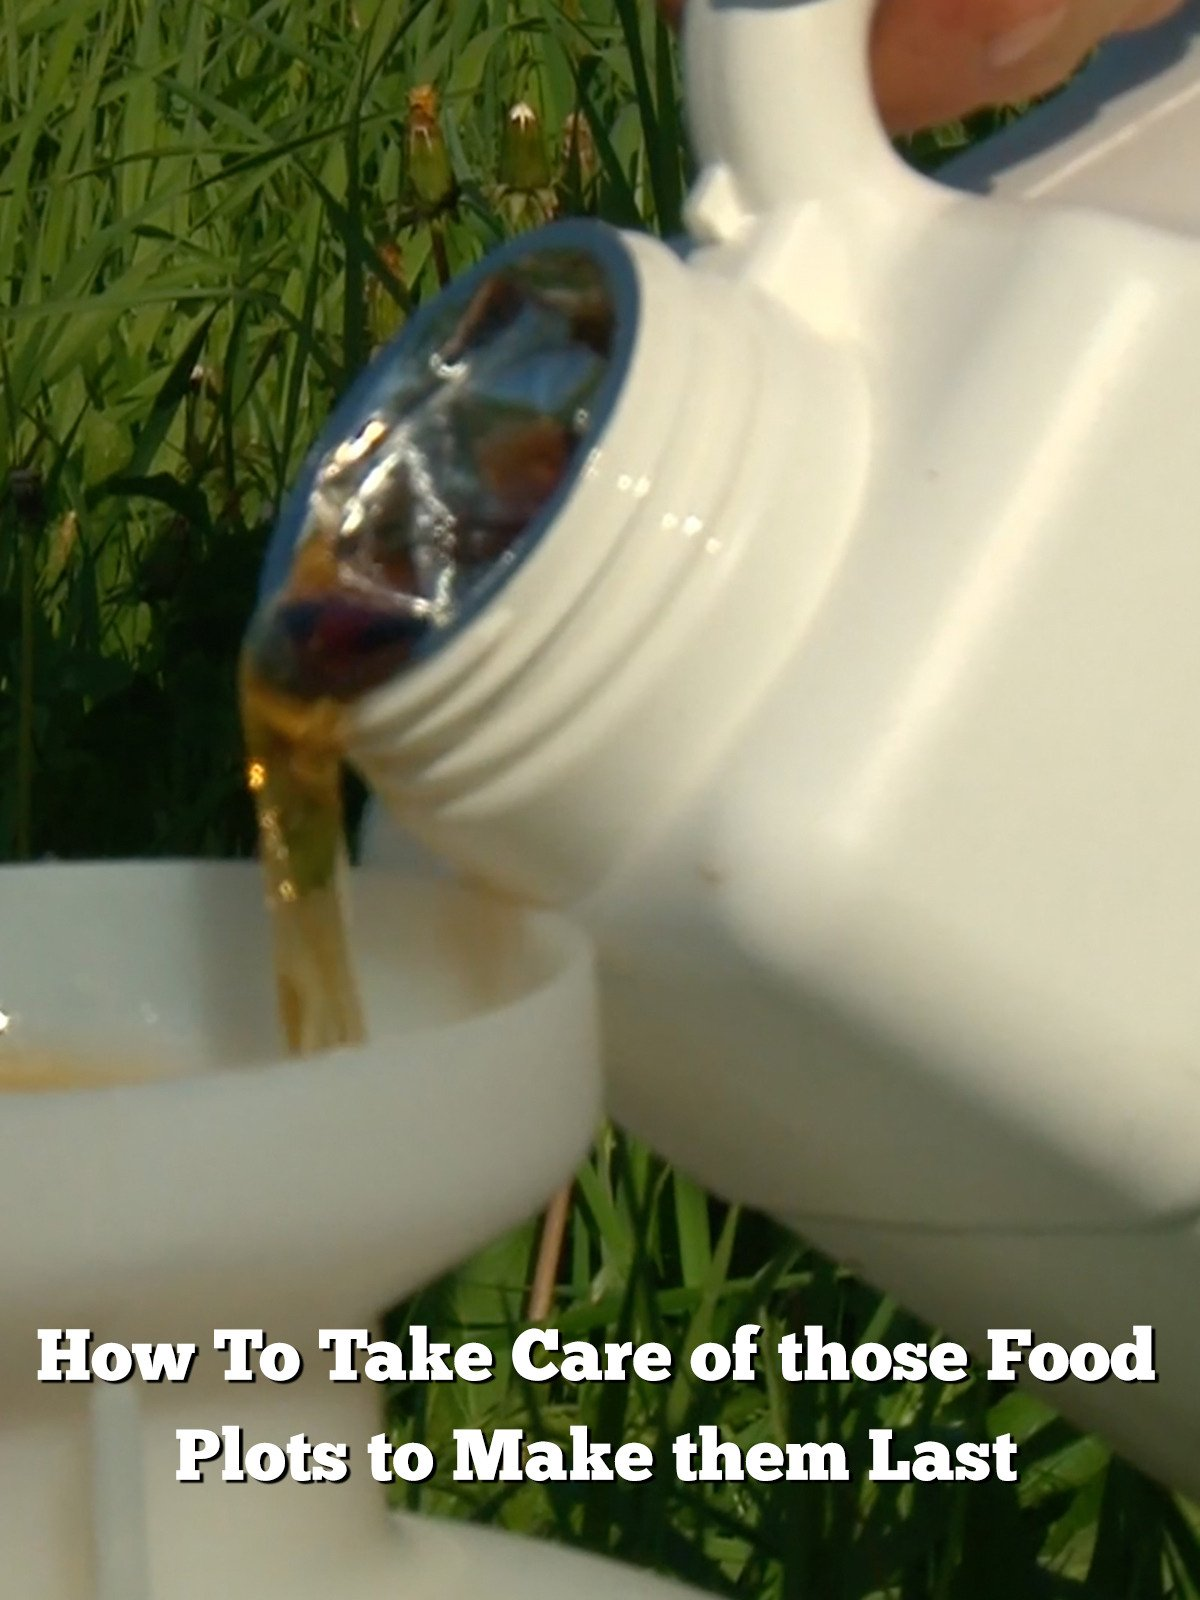 How To Take Care of those Food Plots to Make them Last